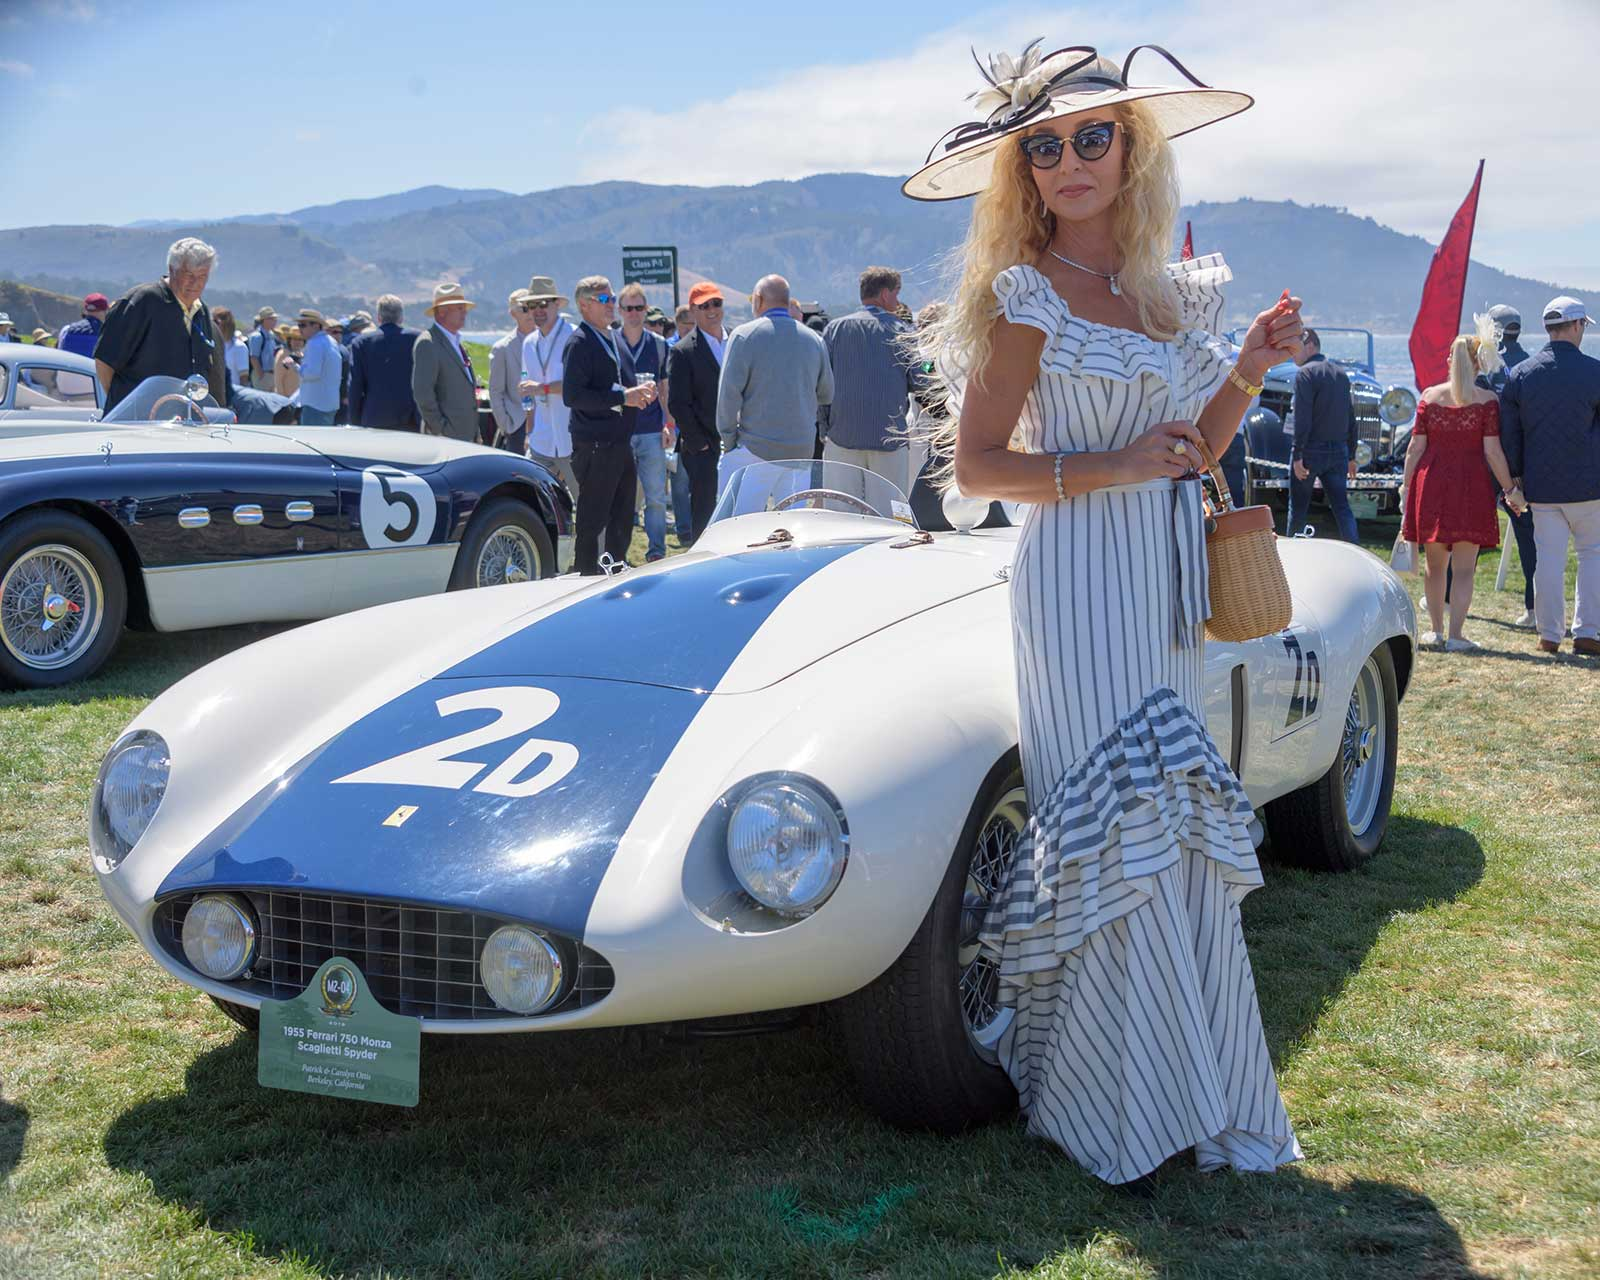 Concours Style at the Pebble Beach Concours d'Elegance 2019